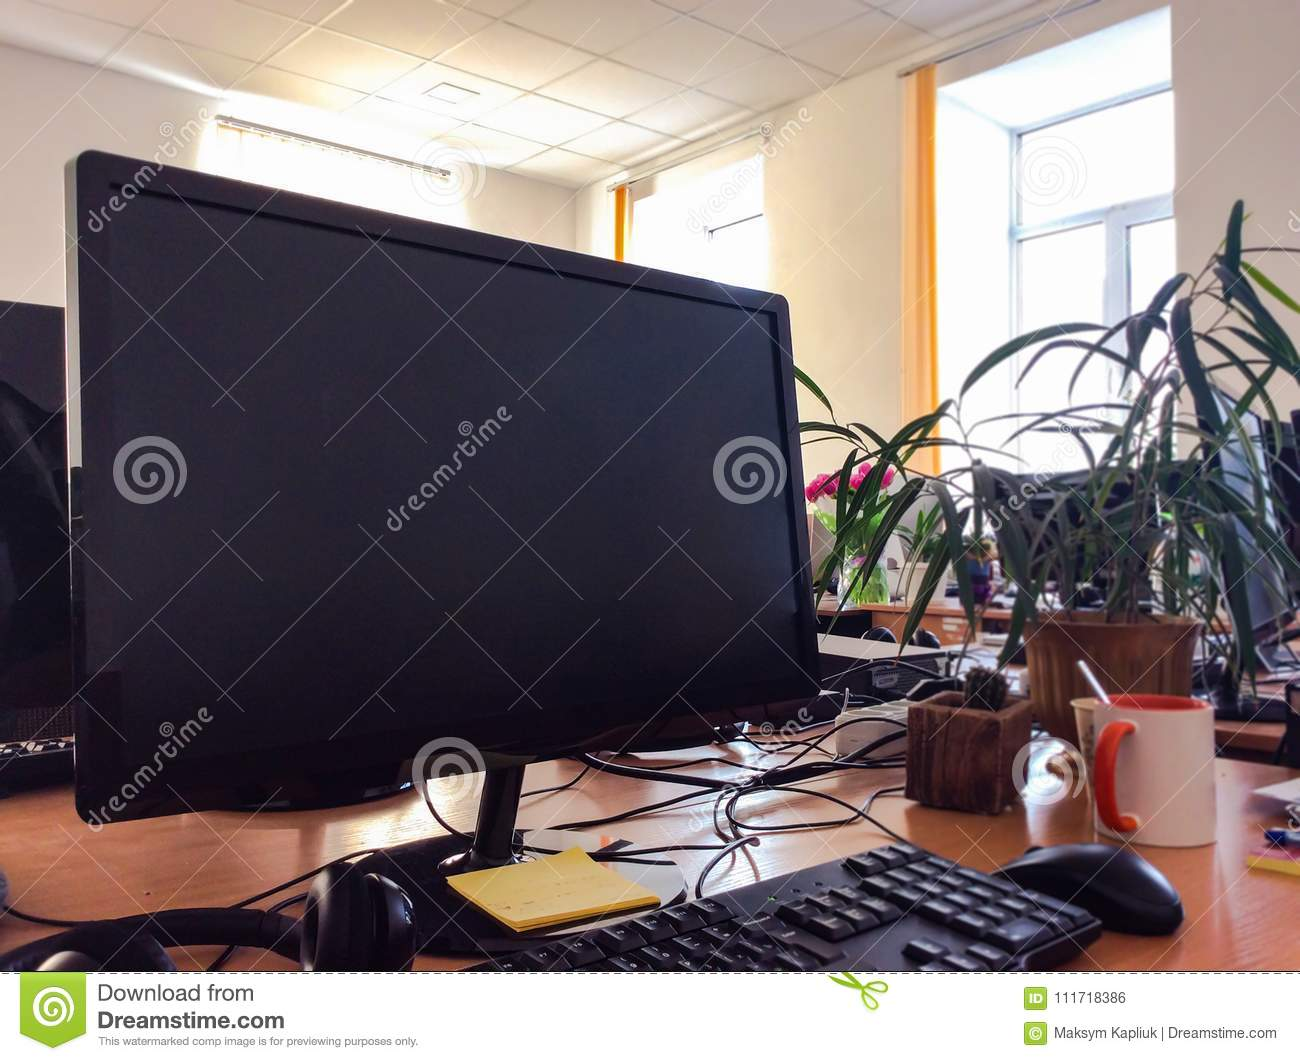 Monitor with keyboard on wooden table with cup of coffee and green plants